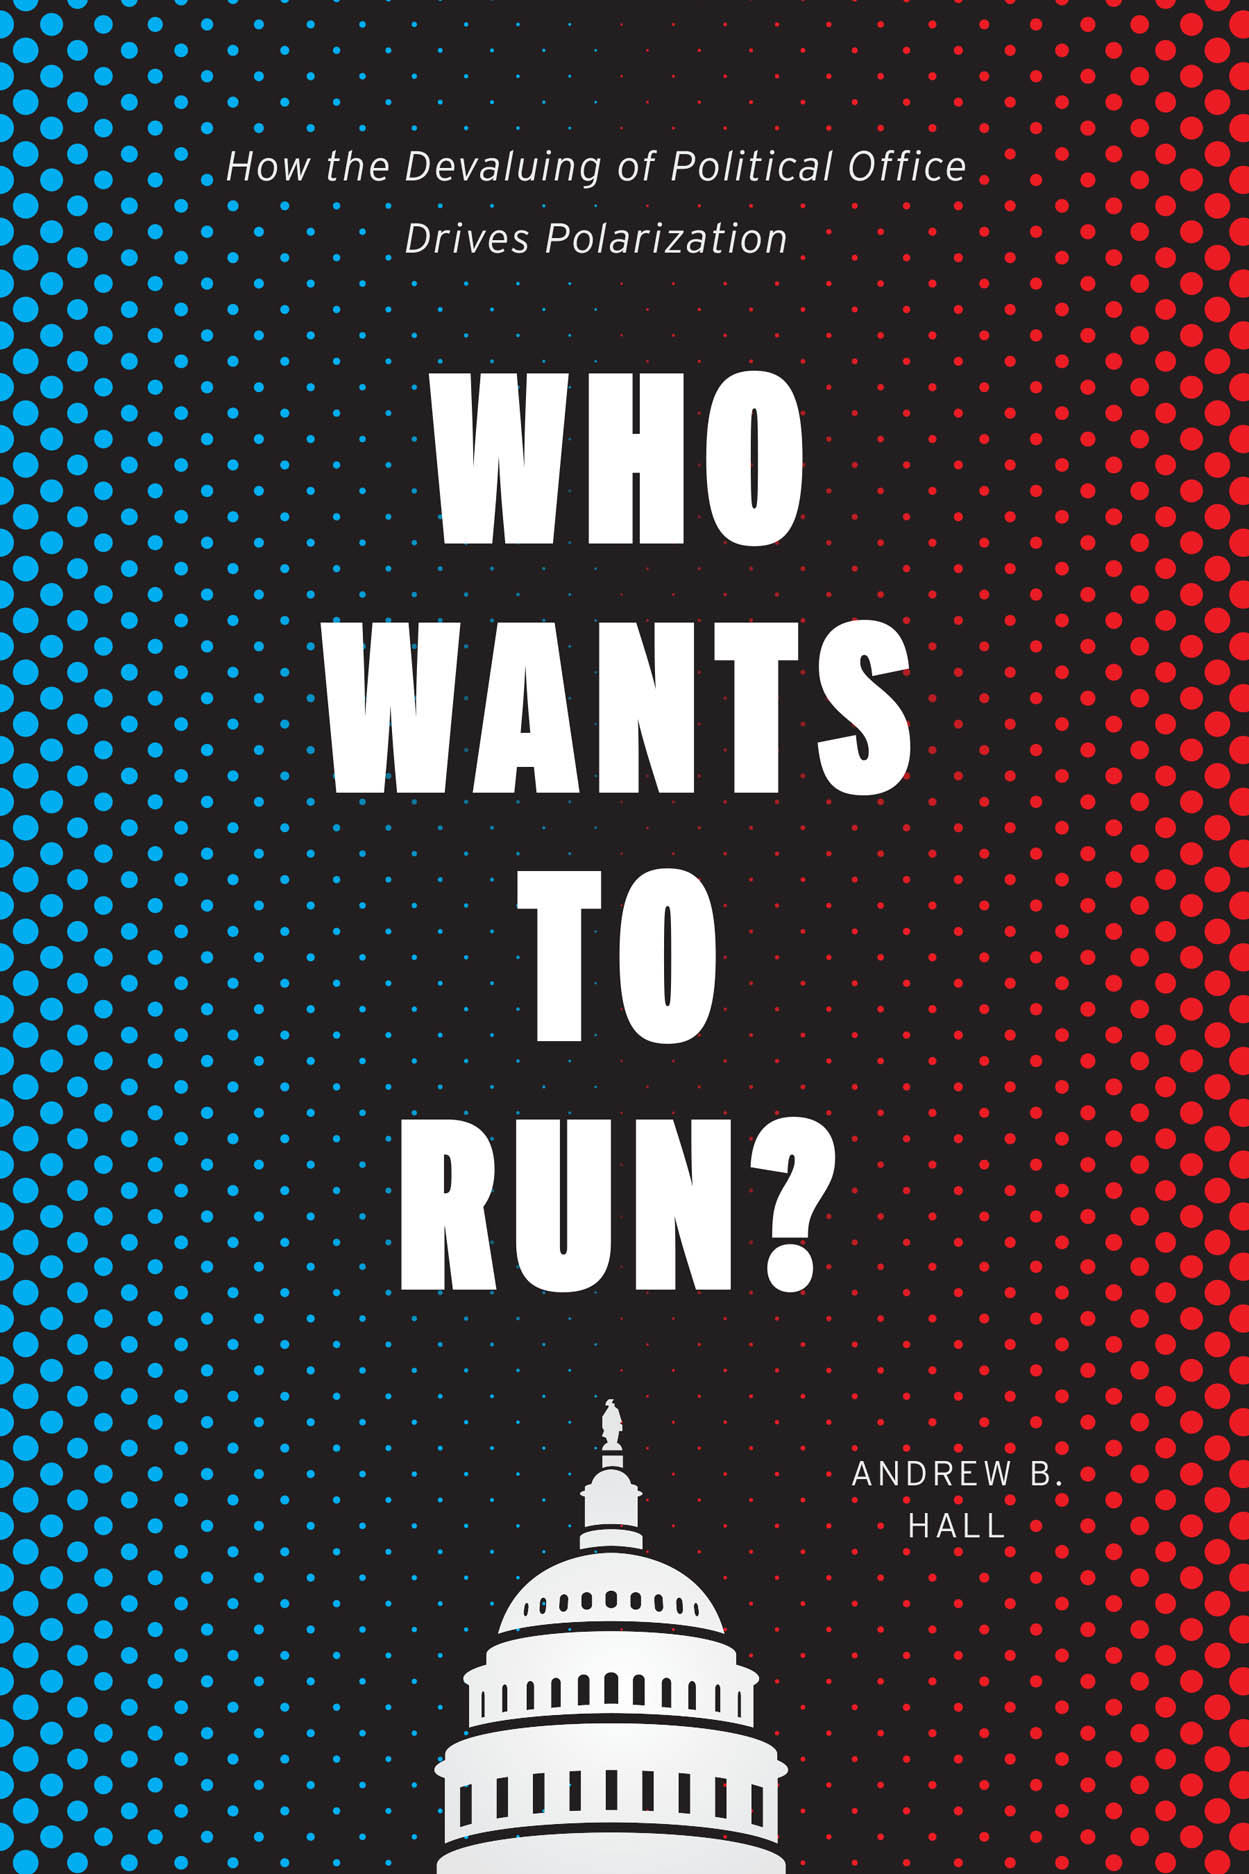 Who Wants to Run?: How the Devaluing of Political Office Drives Polarization